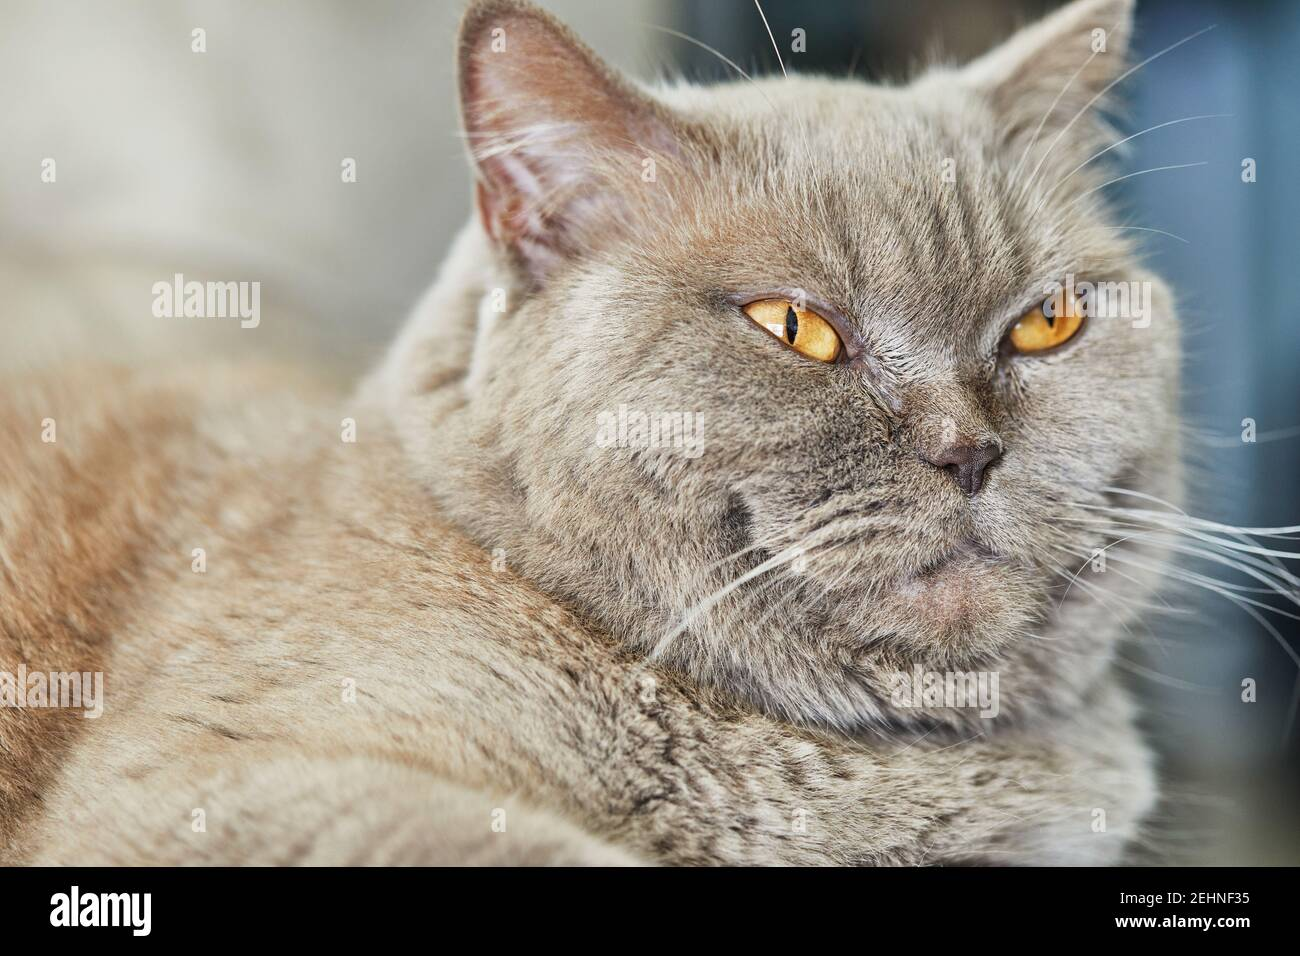 British gray cat is sitting on the couch, close-up. Stock Photo